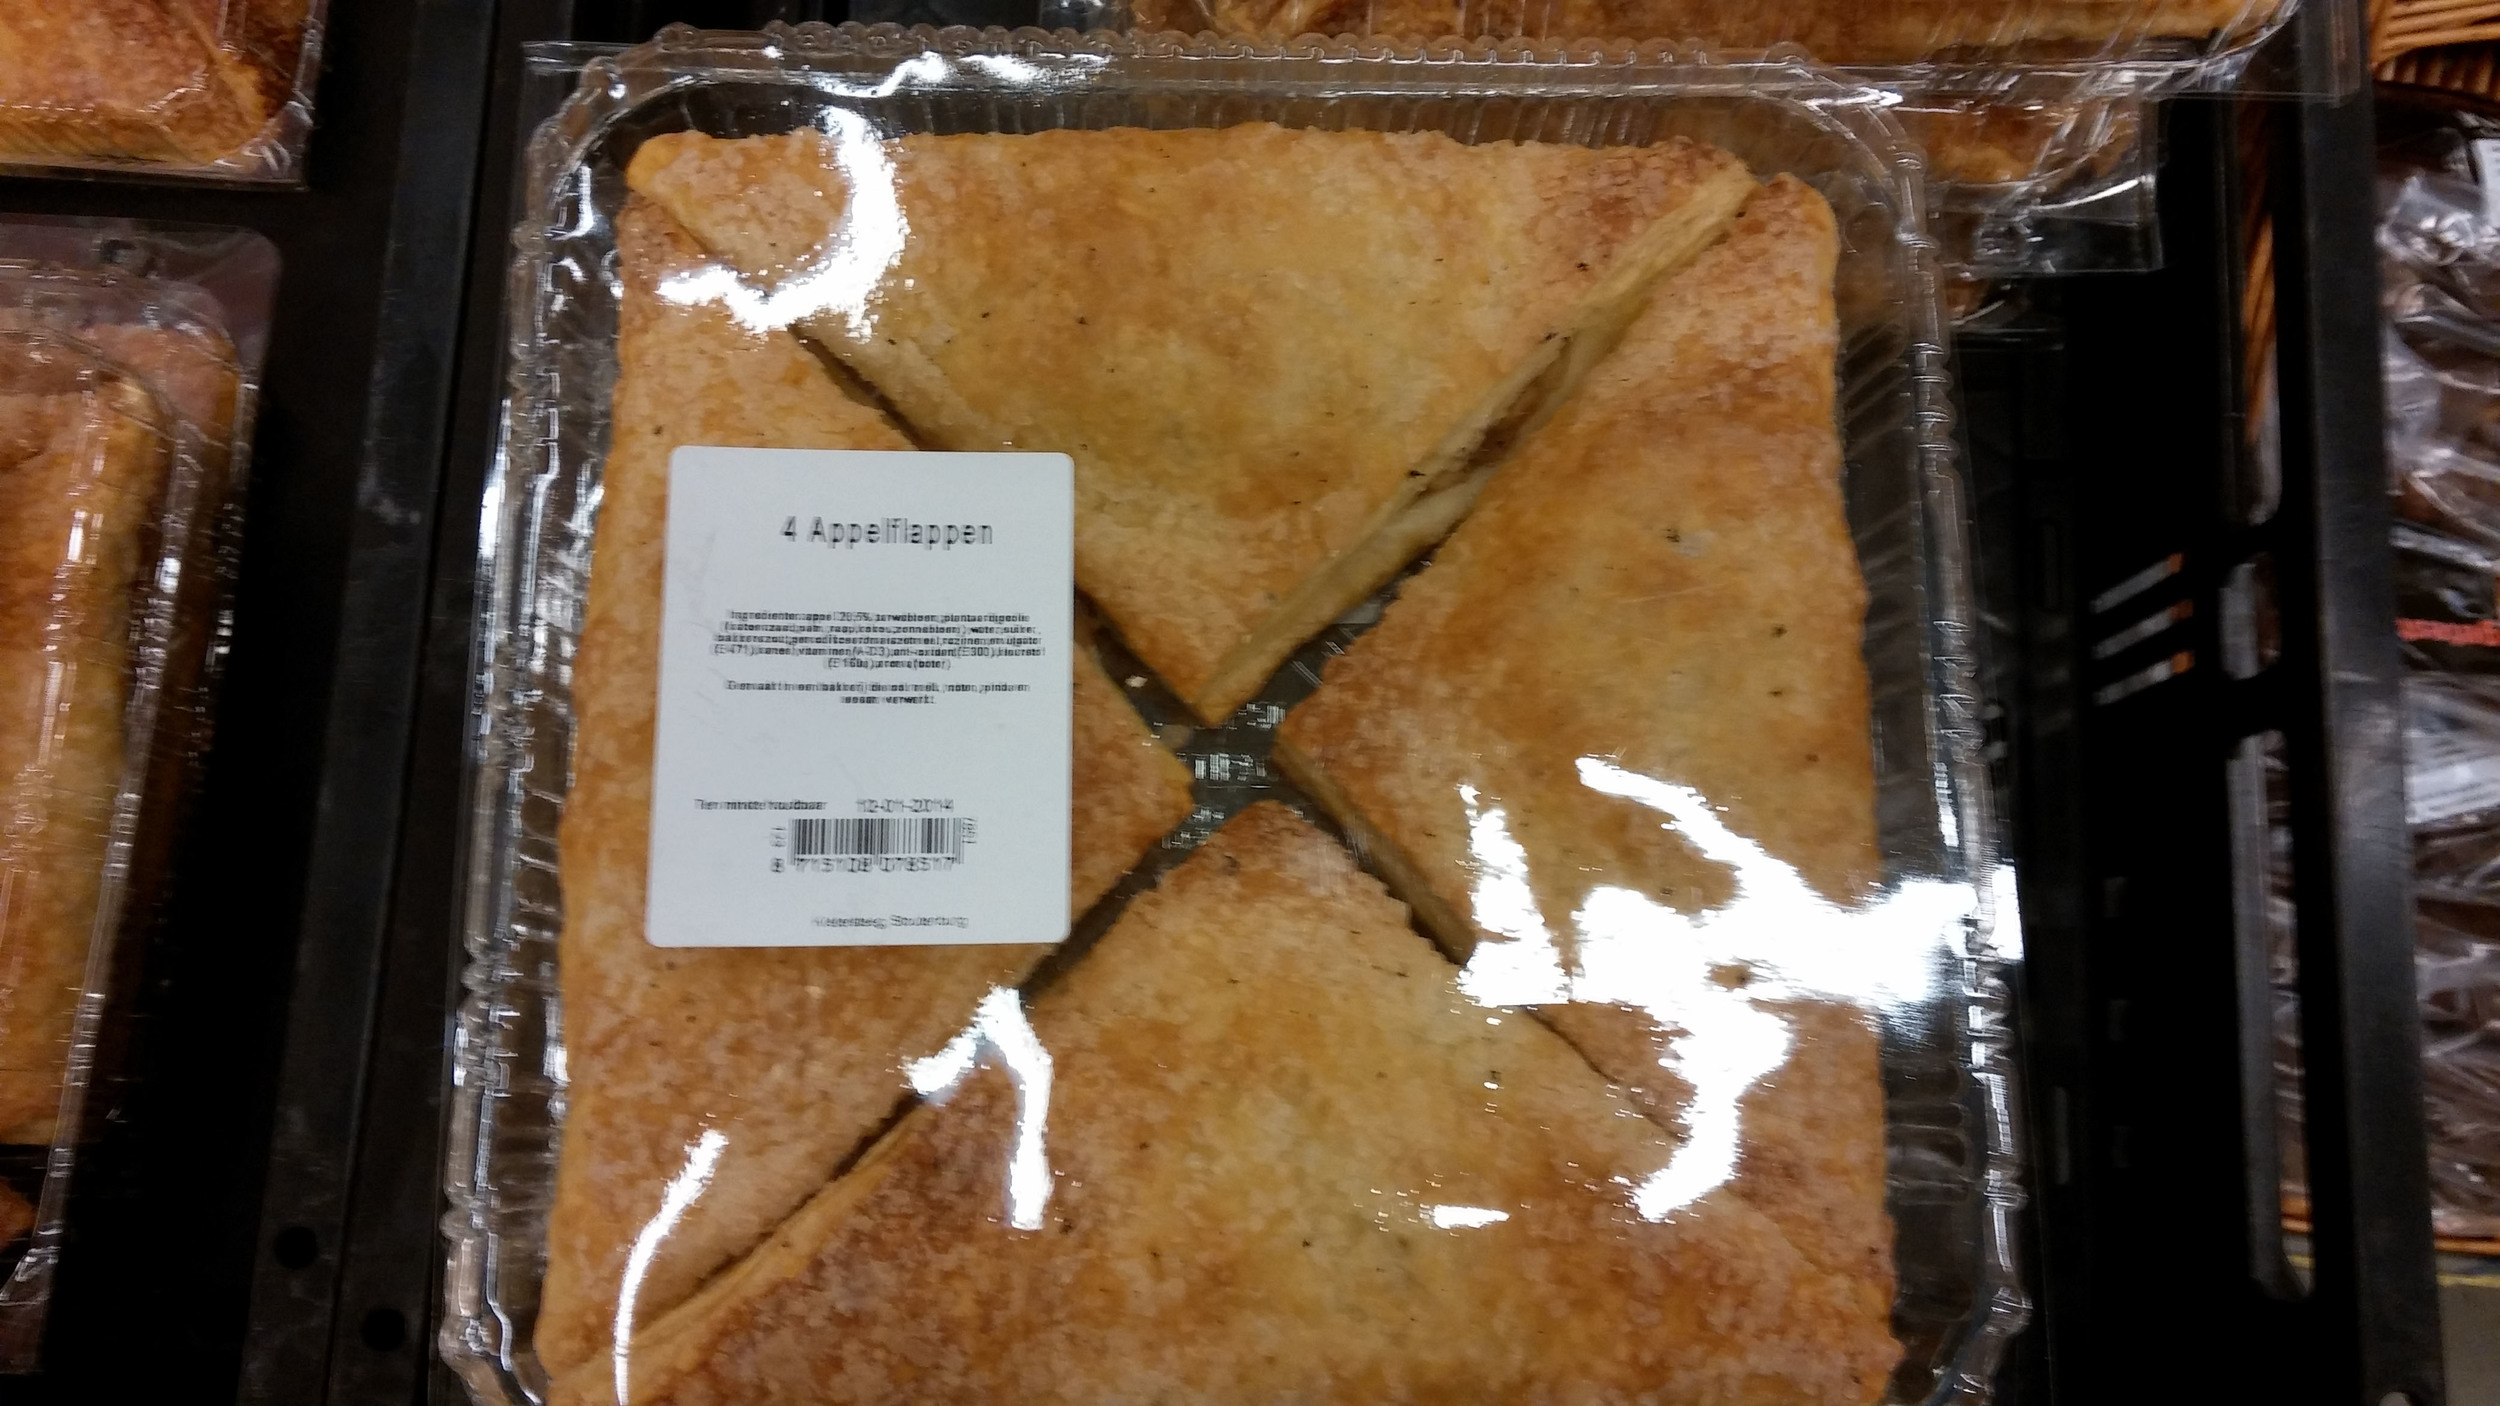 Appelflappen! (translation: what I'm going to call apple turnovers from now on)